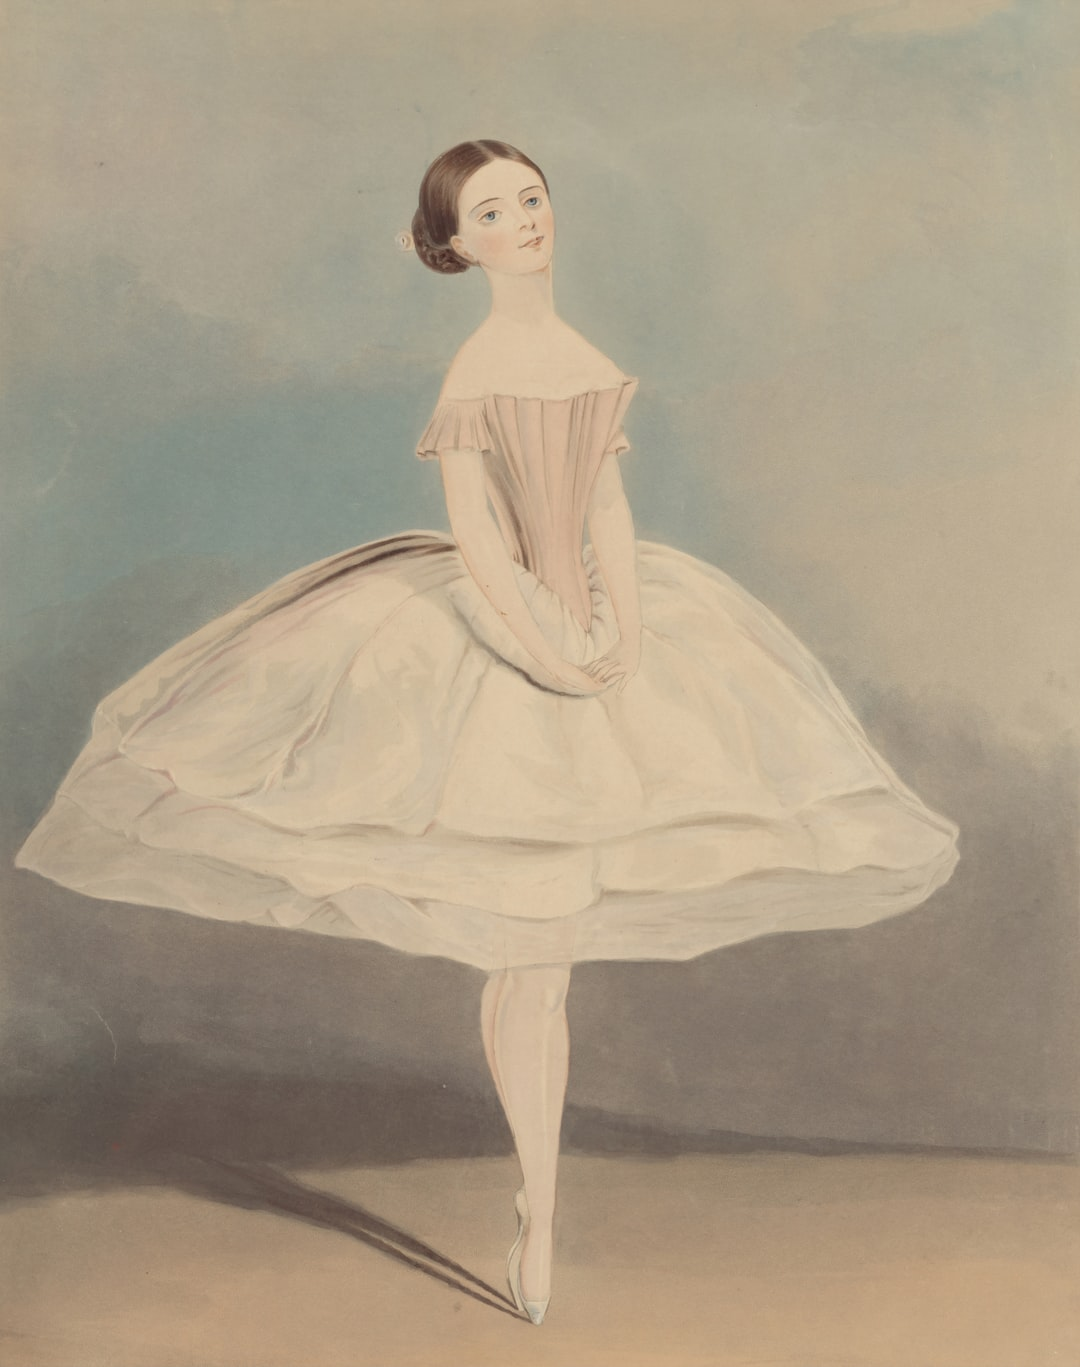 Painted in 1845 by G A Turner